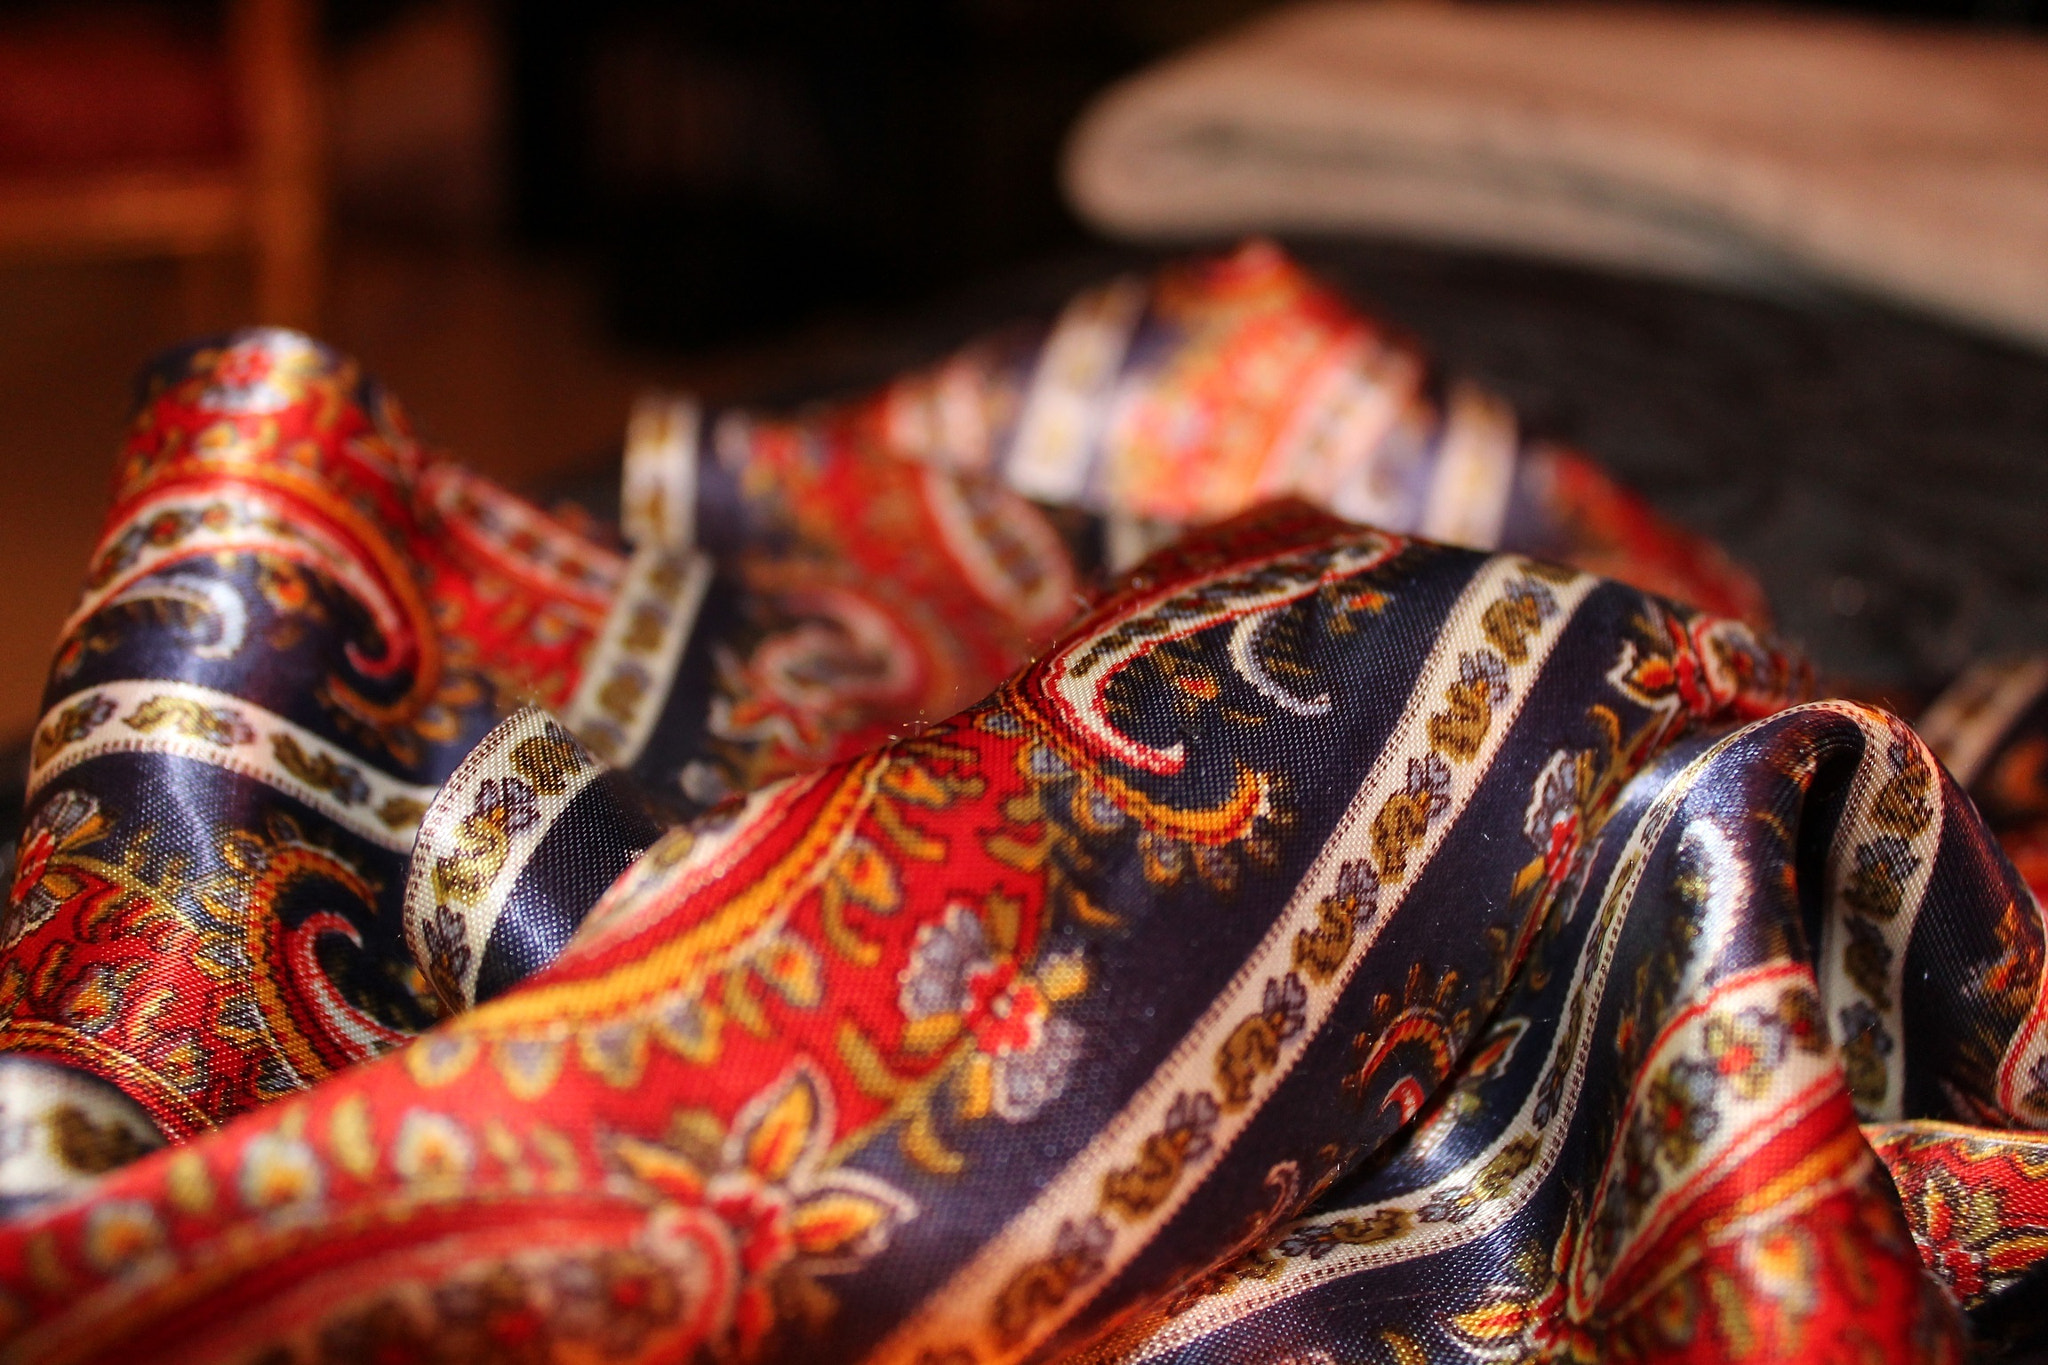 Photograph Red and Blue jacquard by Daniele Dainelli on 500px